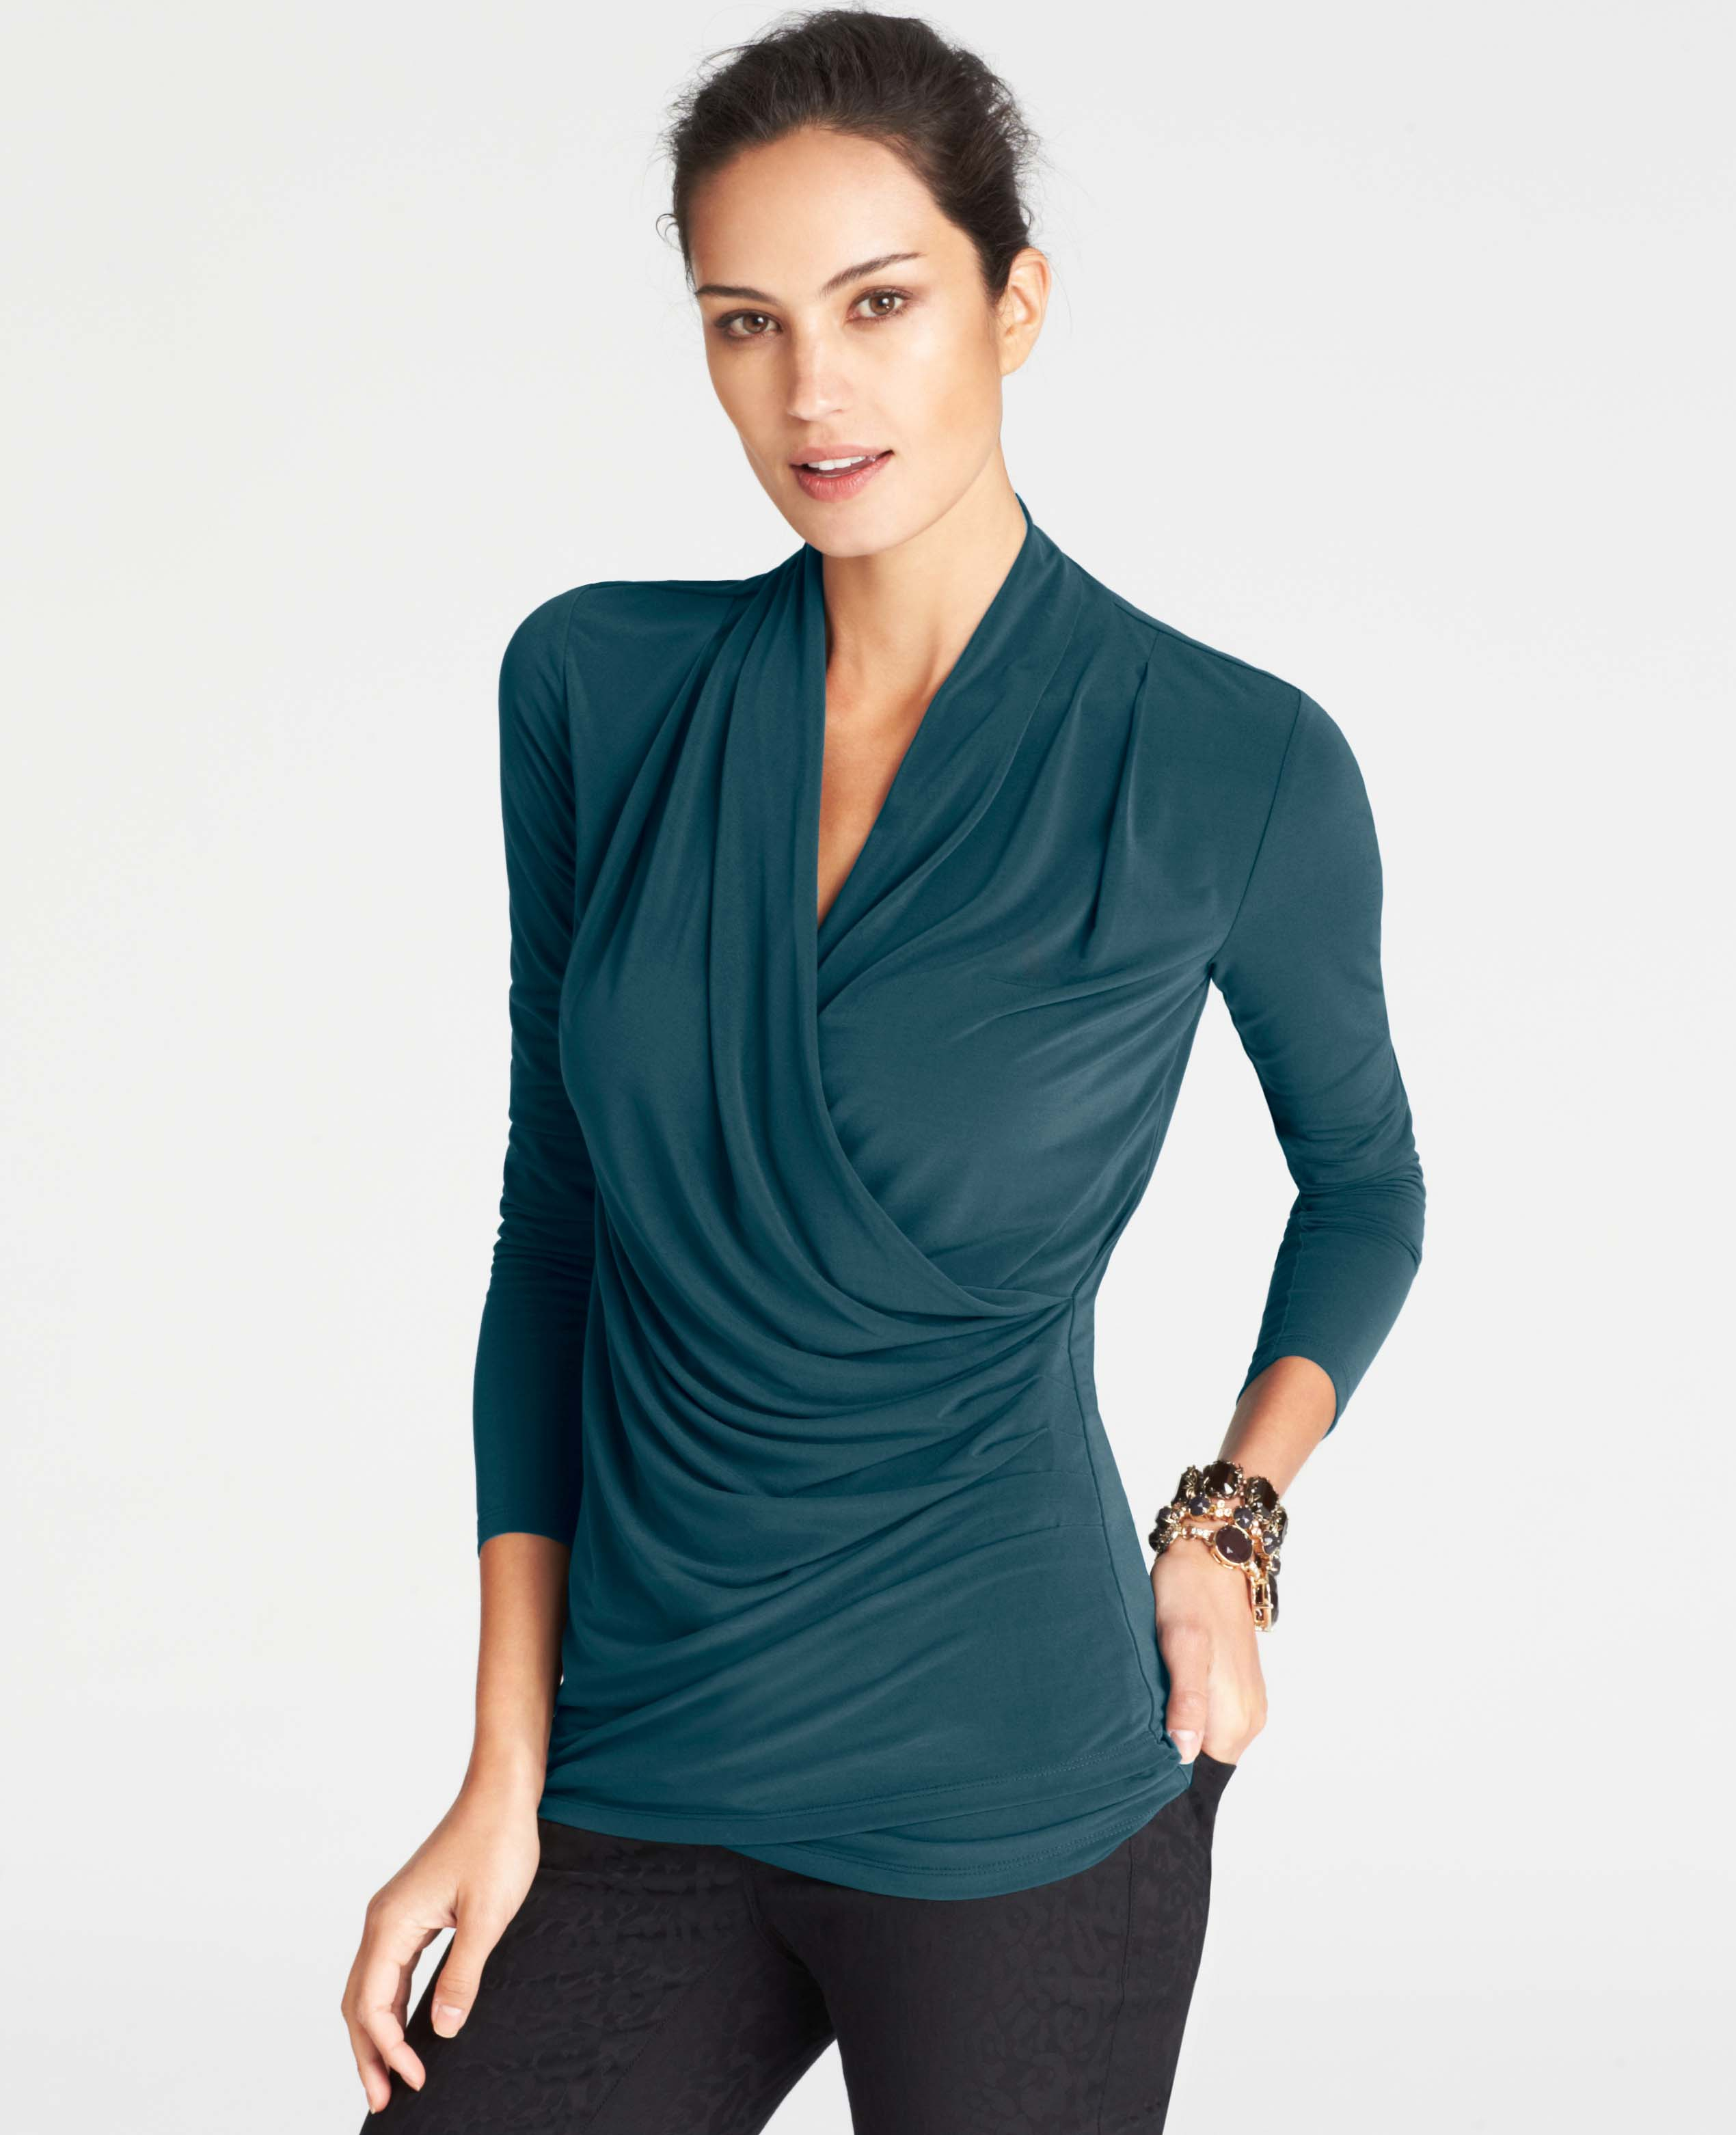 c5d3dbe03ffb8a ASOS DESIGN sheer wrap top with lace trims Green Women s Tops 100 Polyester  WXjYULSa Source · Lyst Ann Taylor Pleated Jersey Wrap Top in Green